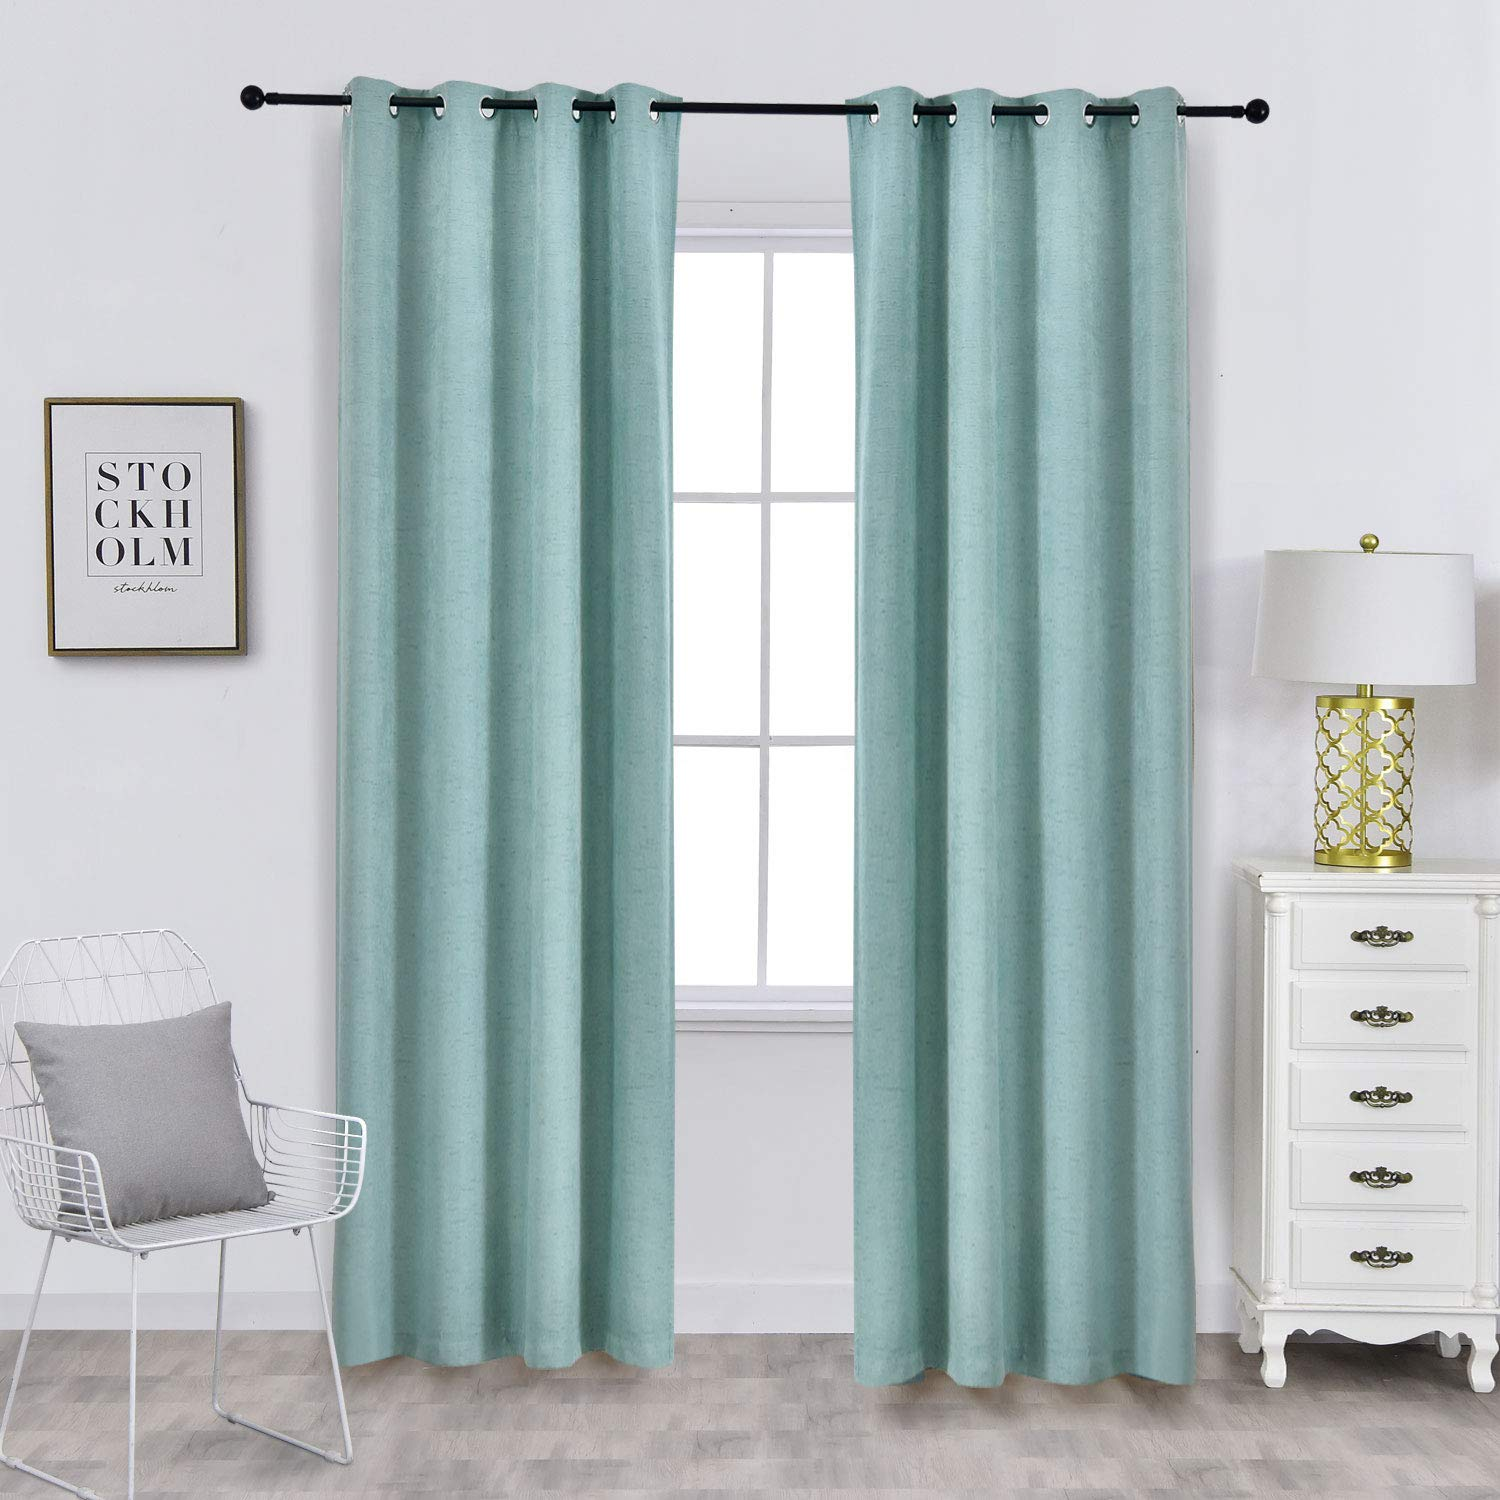 ALLBRIGHT Faux Linen Grommet Room Drakening Curtains Thermal Insulated Curtains for Living Room with Meteor Texture (2 Panels, 52 x 84 inches, Light Tiffany Blue)